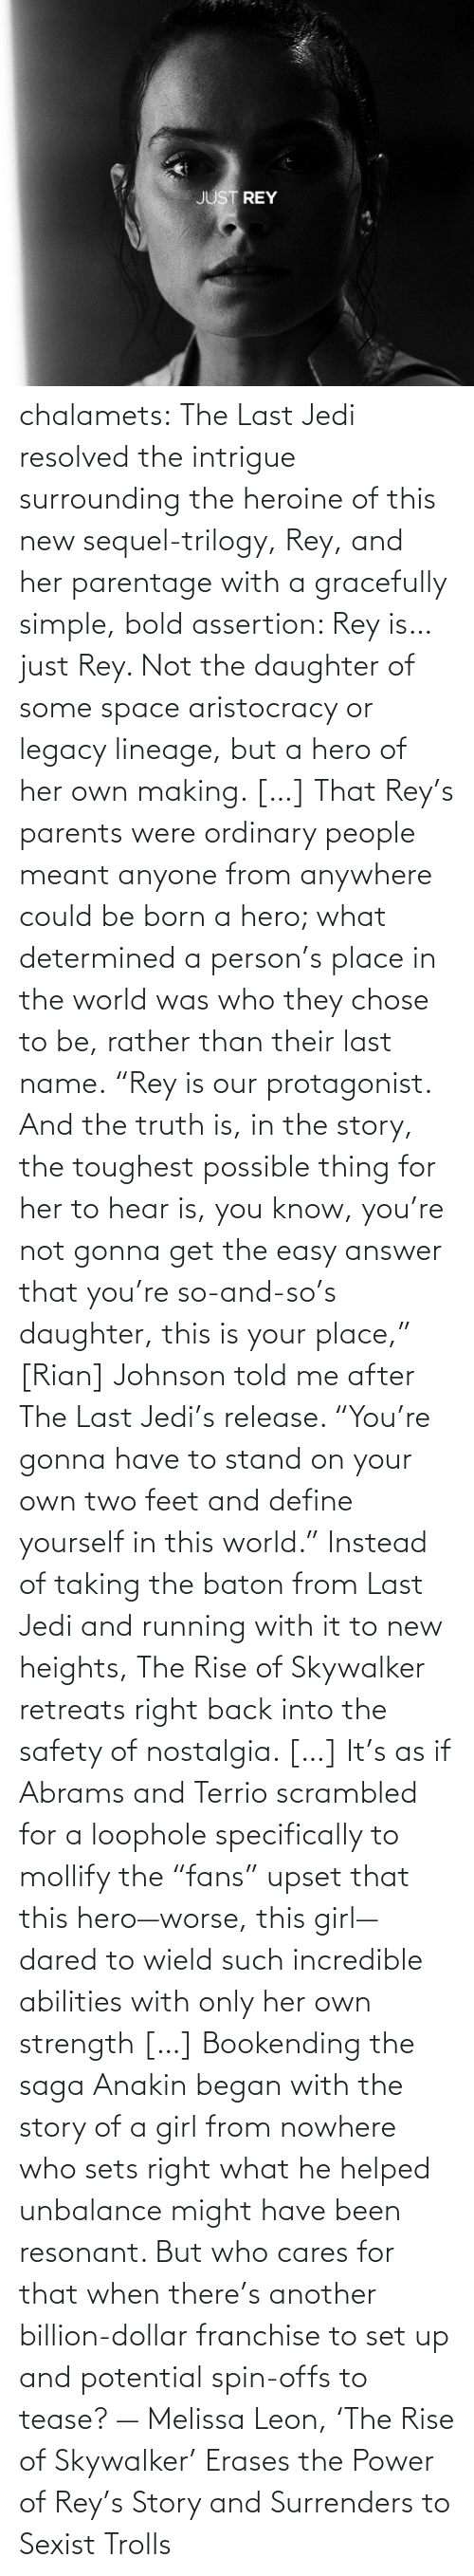 "Power: chalamets:  The Last Jedi resolved the intrigue surrounding the heroine of this new sequel-trilogy, Rey, and her parentage with a gracefully simple, bold assertion: Rey is… just Rey. Not the daughter of some space aristocracy or legacy lineage, but a hero of her own making. […] That Rey's parents were ordinary people meant anyone from anywhere could be born a hero; what determined a person's place in the world was who they chose to be, rather than their last name. ""Rey is our protagonist. And the truth is, in the story, the toughest possible thing for her to hear is, you know, you're not gonna get the easy answer that you're so-and-so's daughter, this is your place,"" [Rian] Johnson told me after The Last Jedi's release. ""You're gonna have to stand on your own two feet and define yourself in this world."" Instead of taking the baton from Last Jedi and running with it to new heights, The Rise of Skywalker retreats right back into the safety of nostalgia. […] It's as if Abrams and Terrio scrambled for a loophole specifically to mollify the ""fans"" upset that this hero—worse, this girl—dared to wield such incredible abilities with only her own strength […] Bookending the saga Anakin began with the story of a girl from nowhere who sets right what he helped unbalance might have been resonant. But who cares for that when there's another billion-dollar franchise to set up and potential spin-offs to tease? — Melissa Leon, 'The Rise of Skywalker' Erases the Power of Rey's Story and Surrenders to Sexist Trolls"